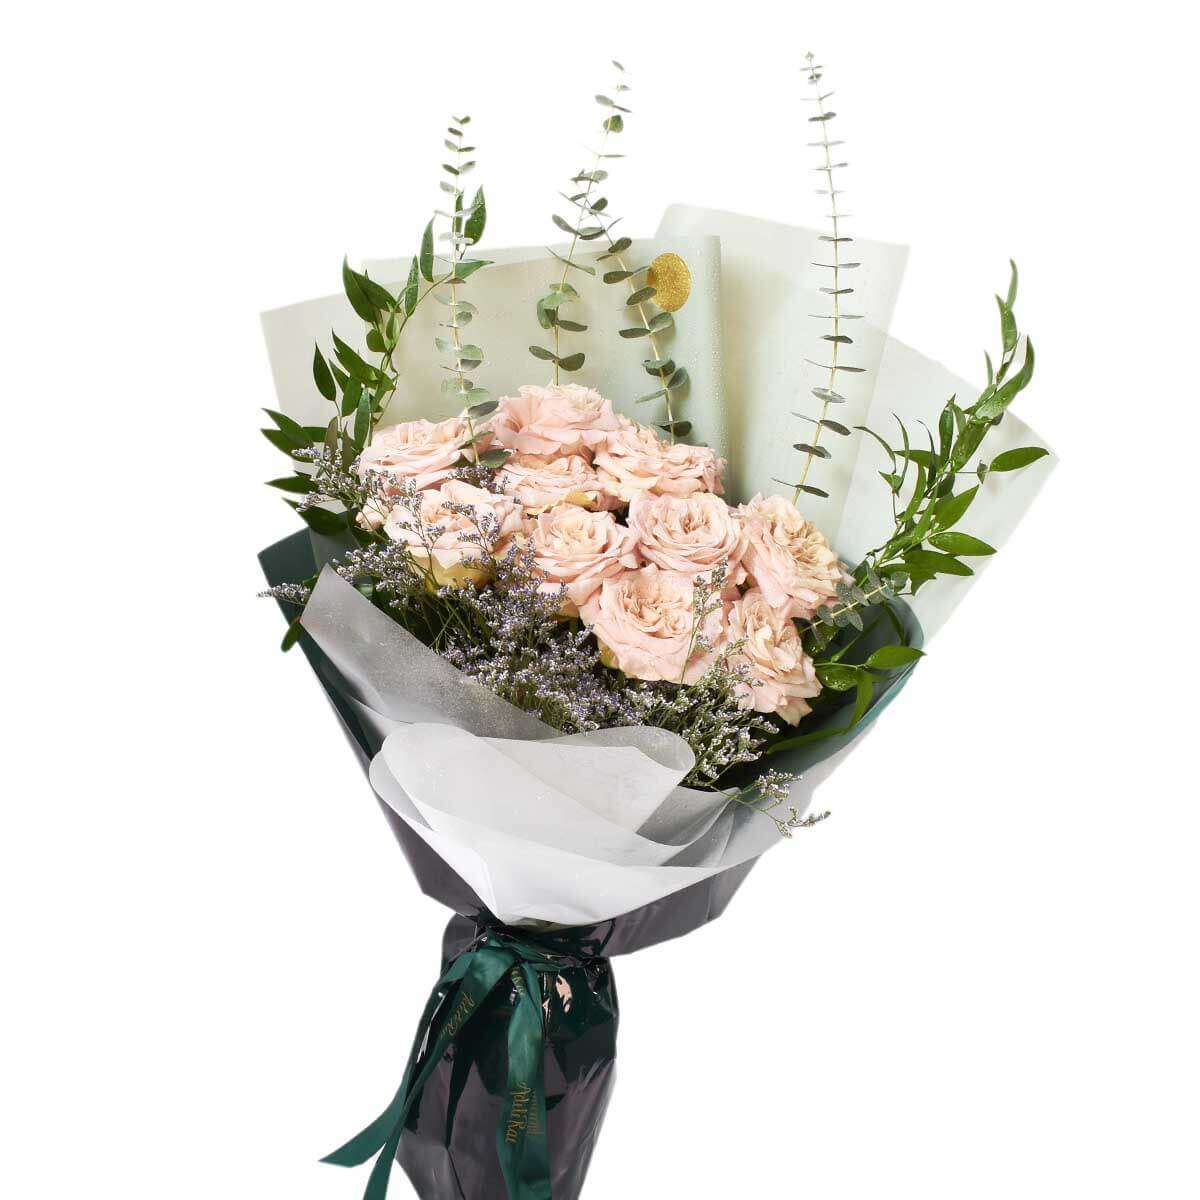 Garden roses fresh bouquet delivery in Burnaby BC | Adele Rae